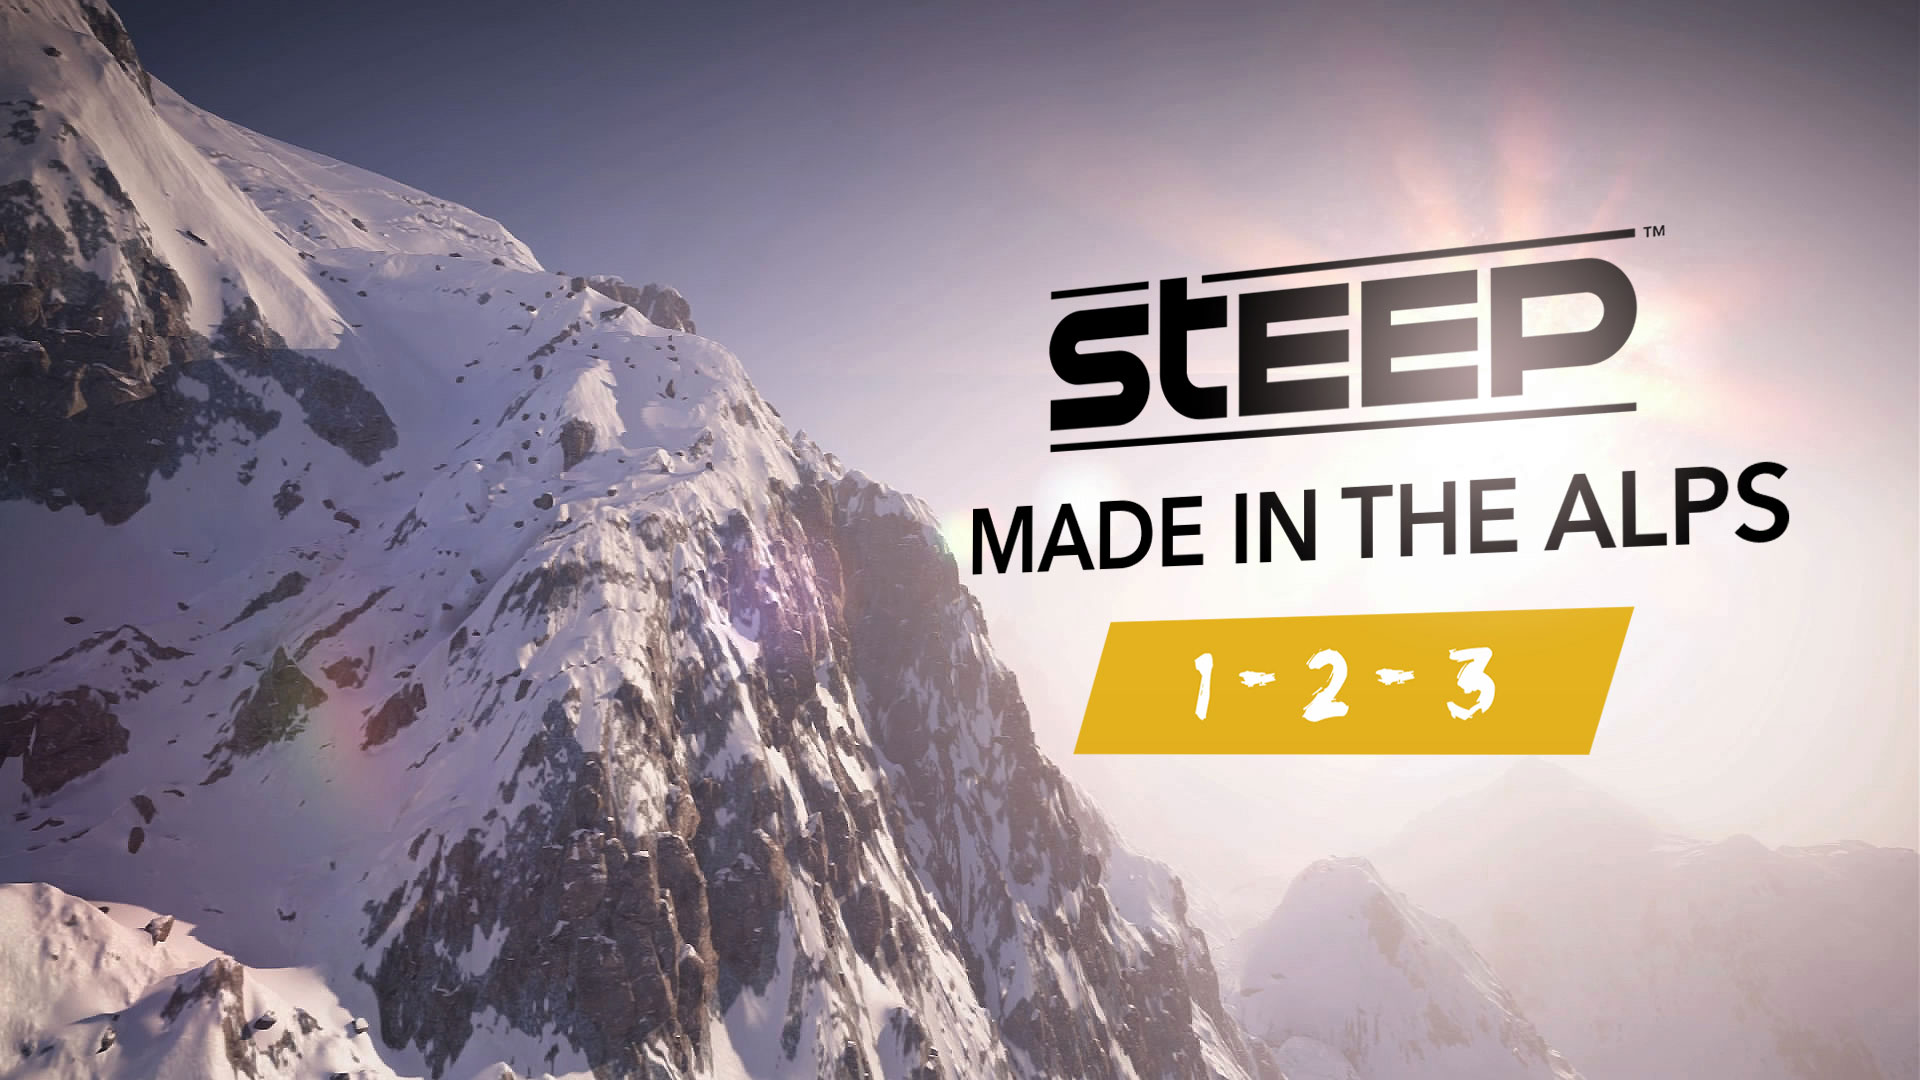 HEADER-Steep_Made-in-the-Alps